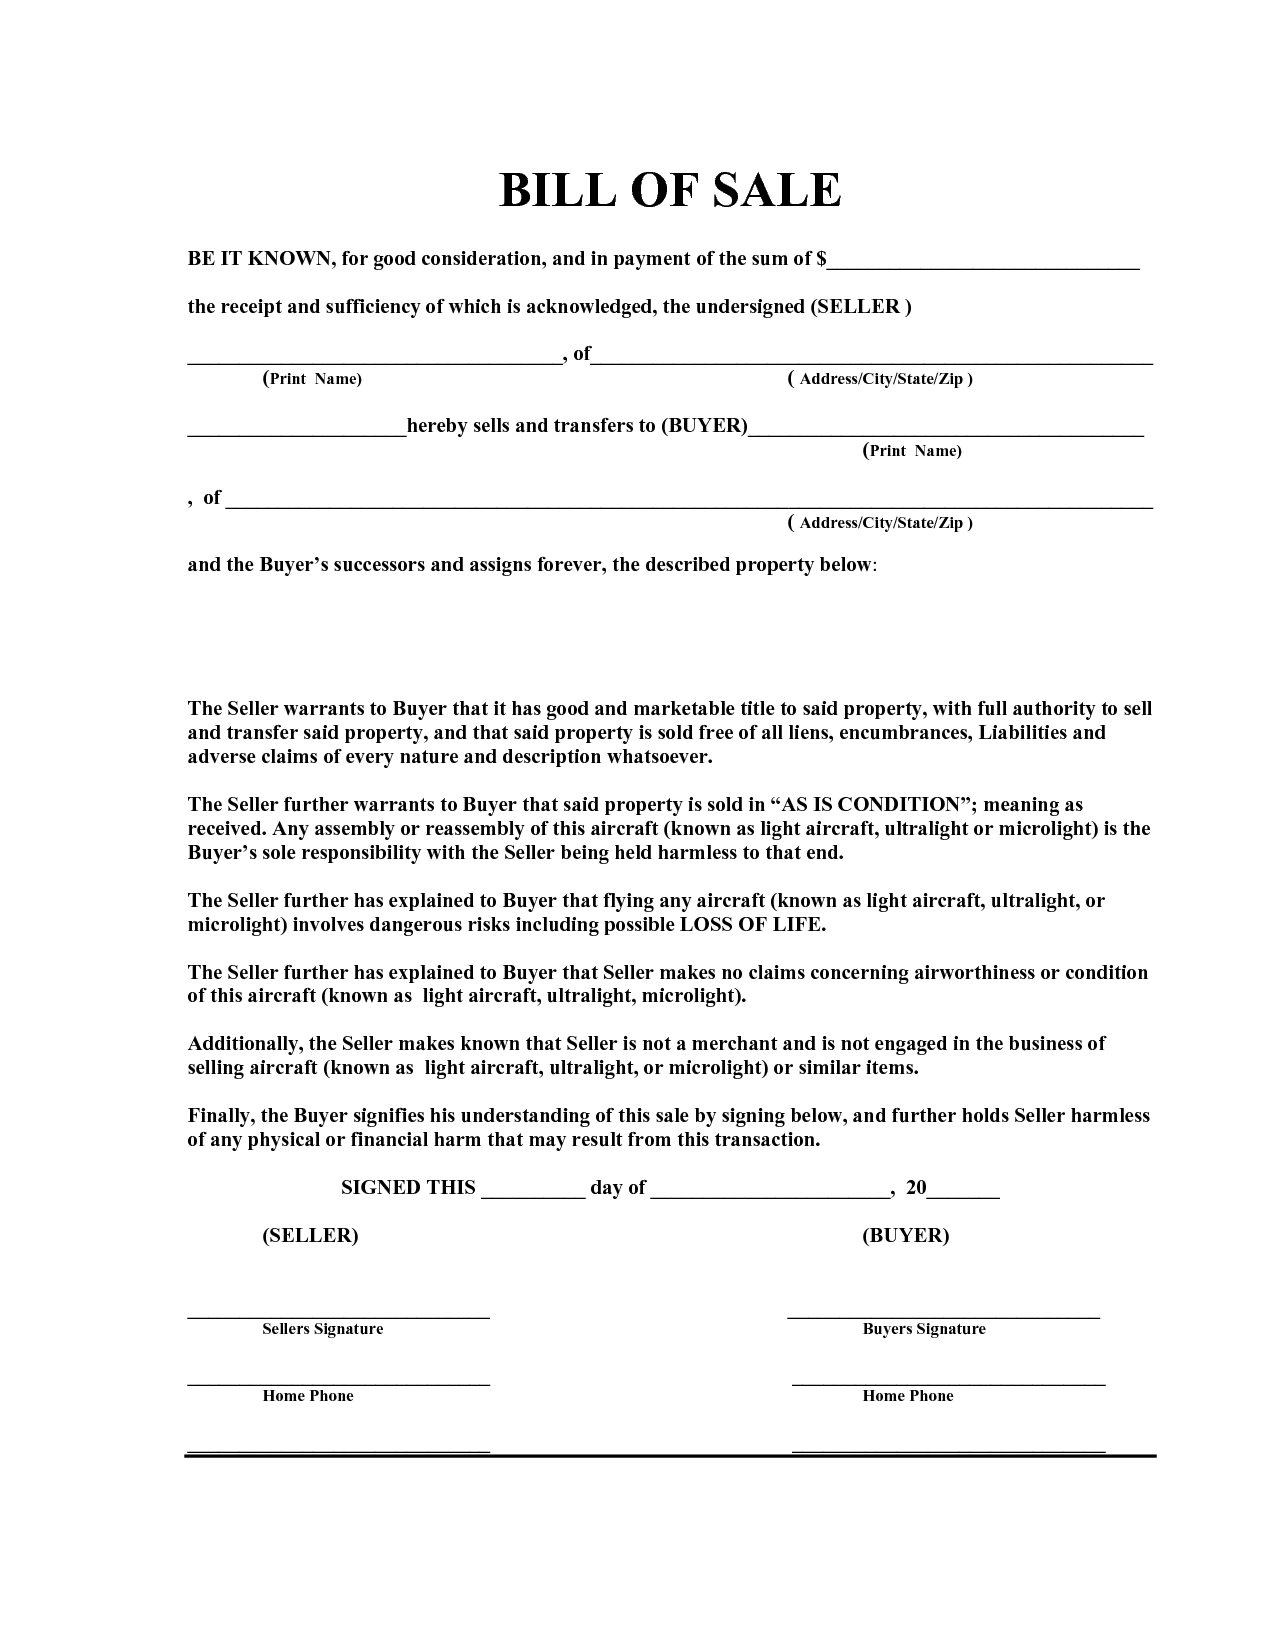 Free Printable Bill Of Sale Legal Forms – Legal Bill of Sale Template